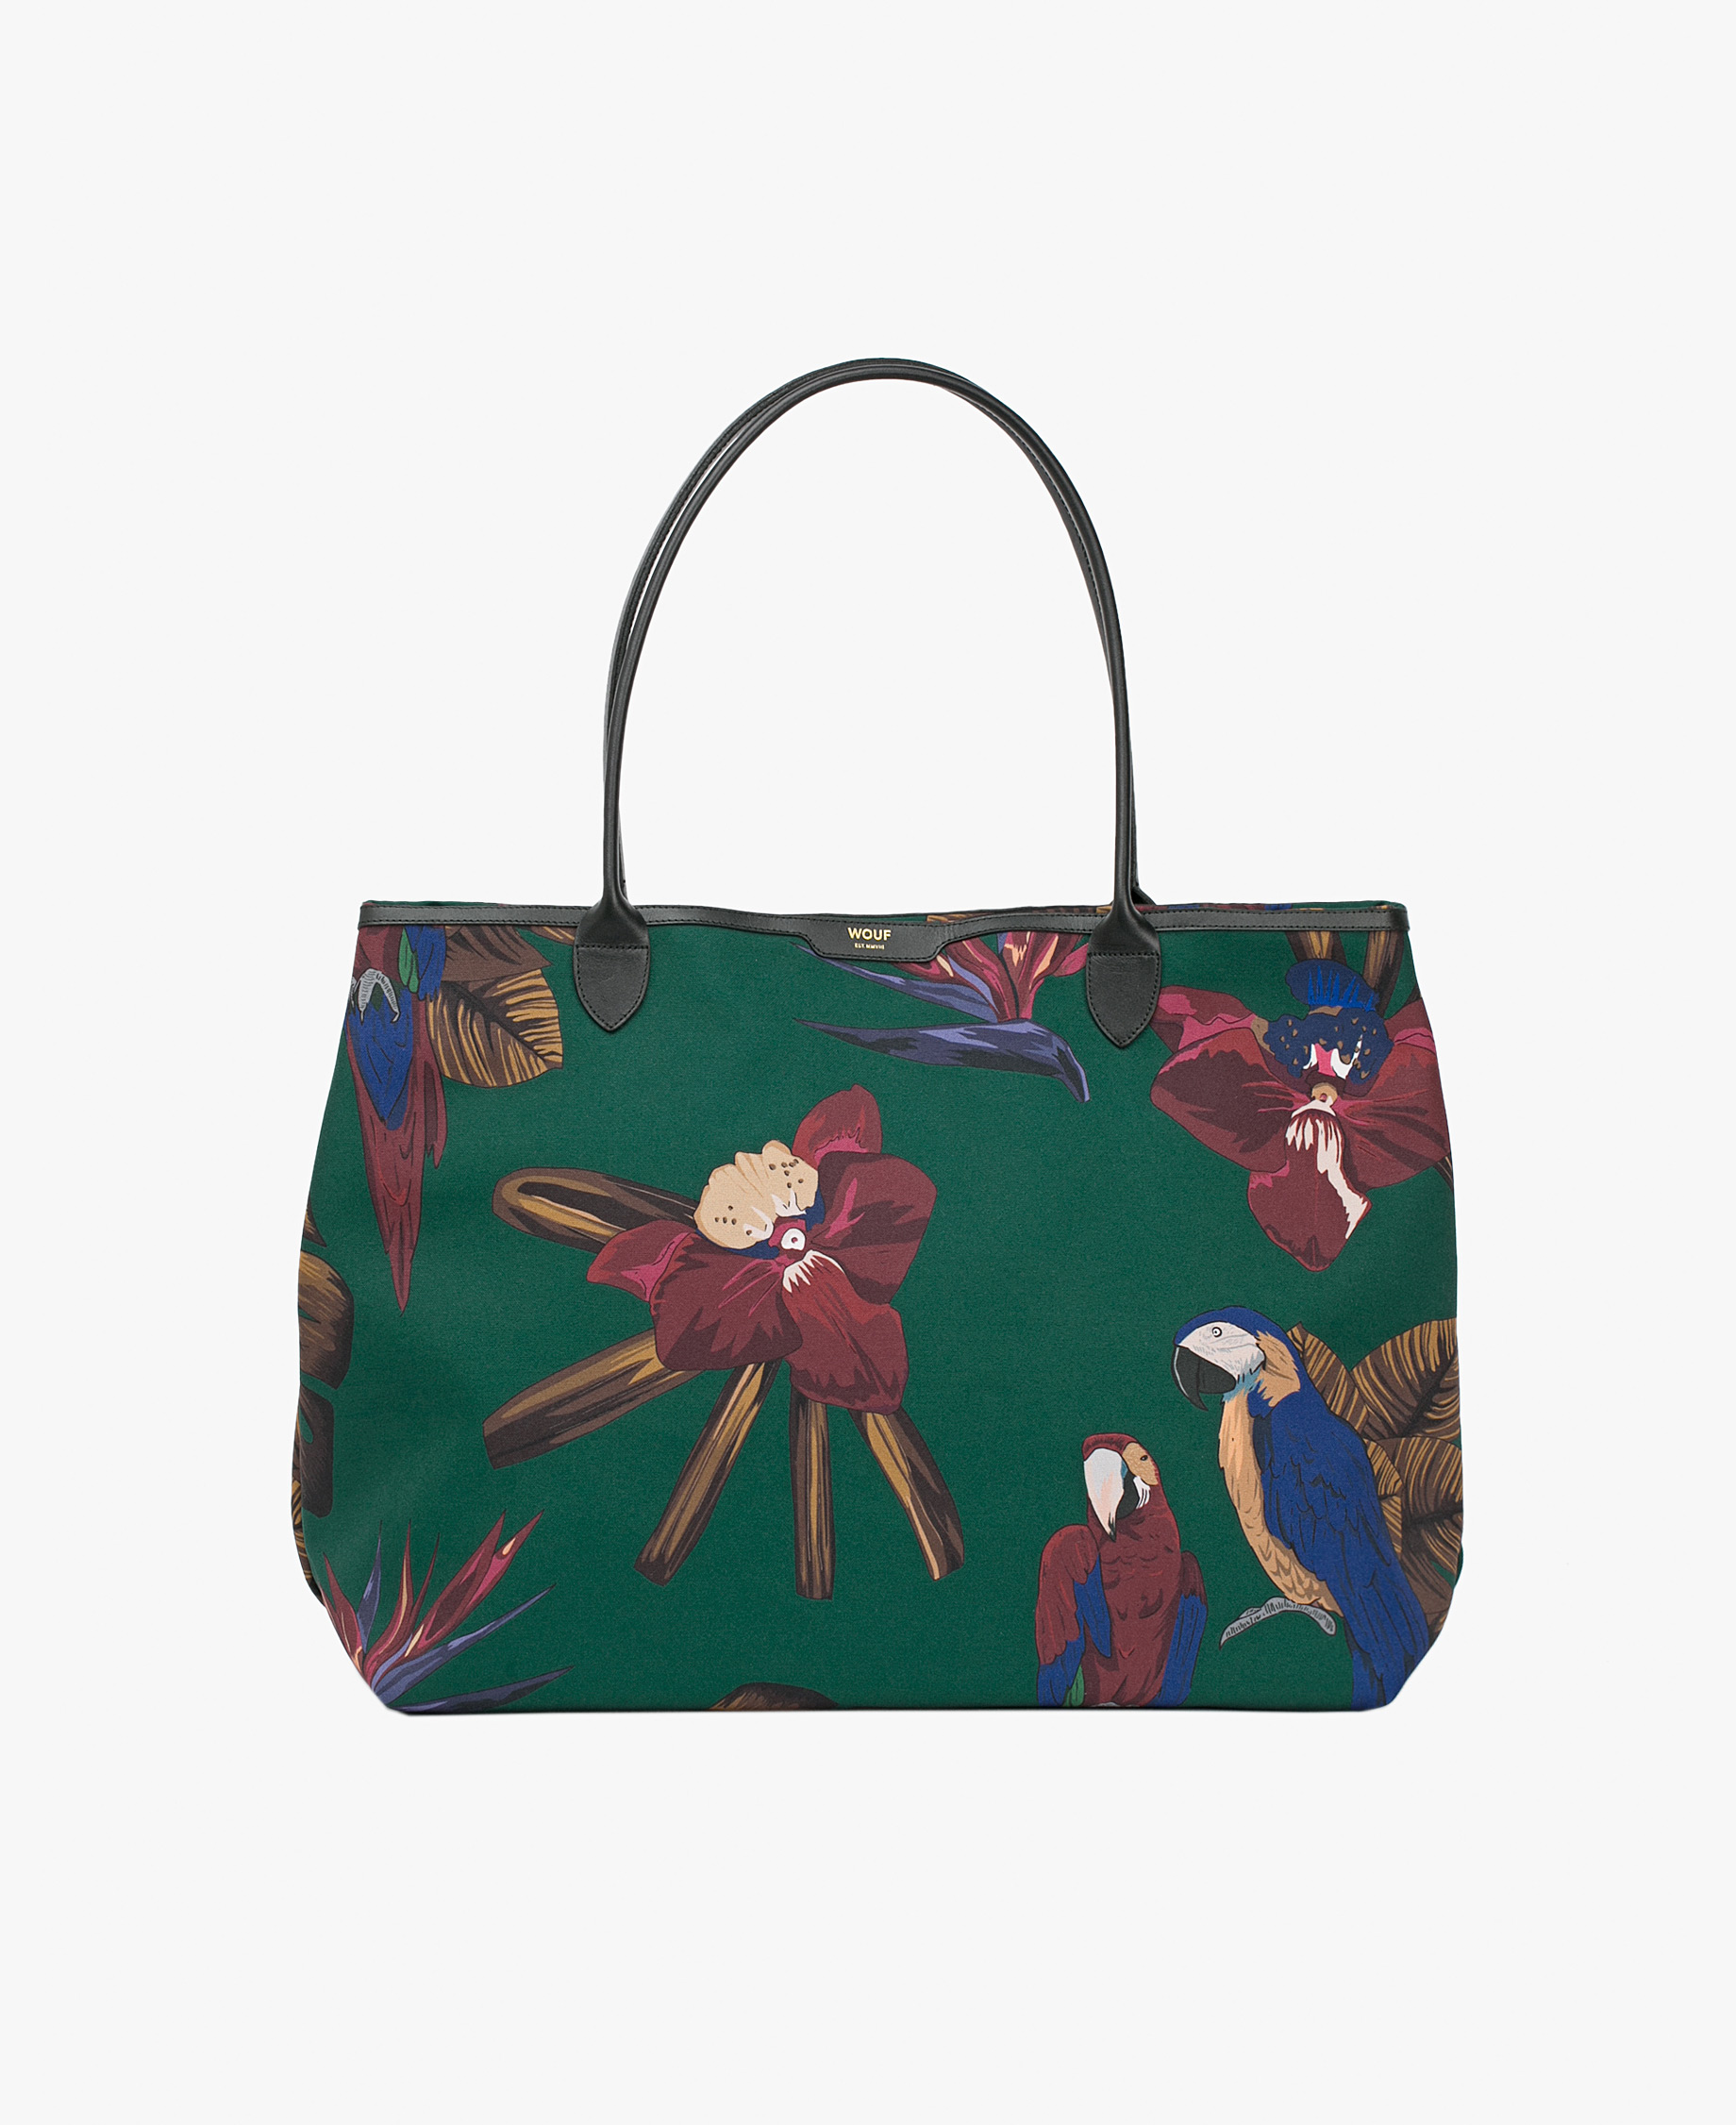 green tote bag with parrots and flowers